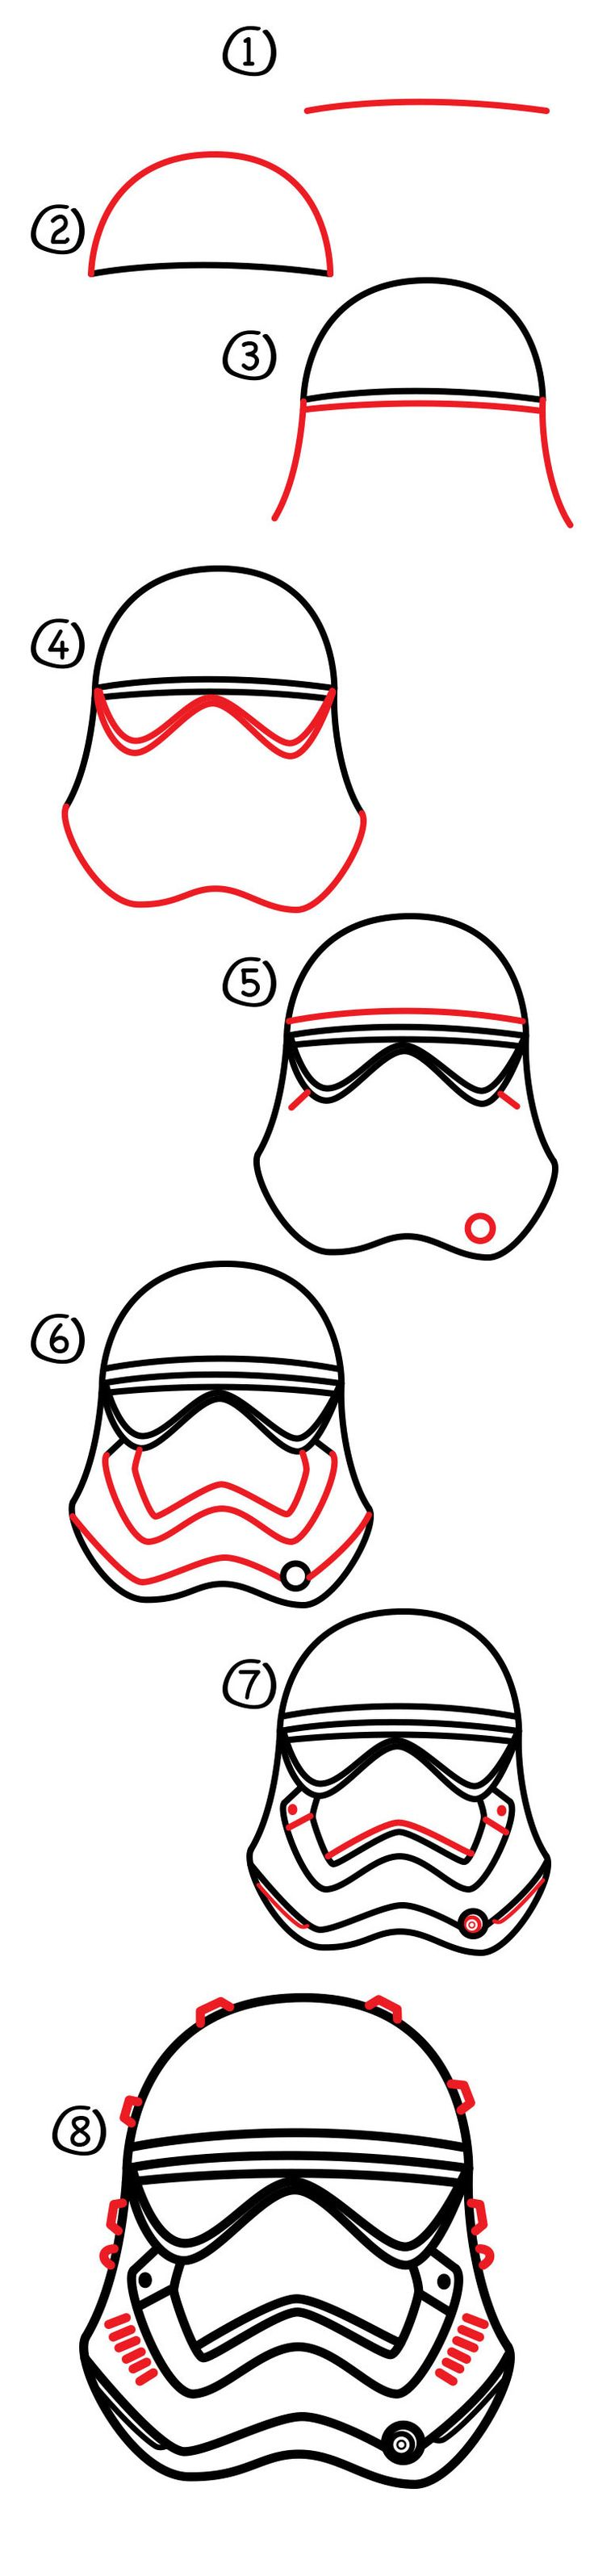 I love Star Wars helmets! Today we're learning how to draw a First Order stormtrooper helmet. Have you seen ouroriginal stormtrooper helmet lesson? And you can count on us doing a lot more helmets…I can't wait to draw Kylo Ren's!